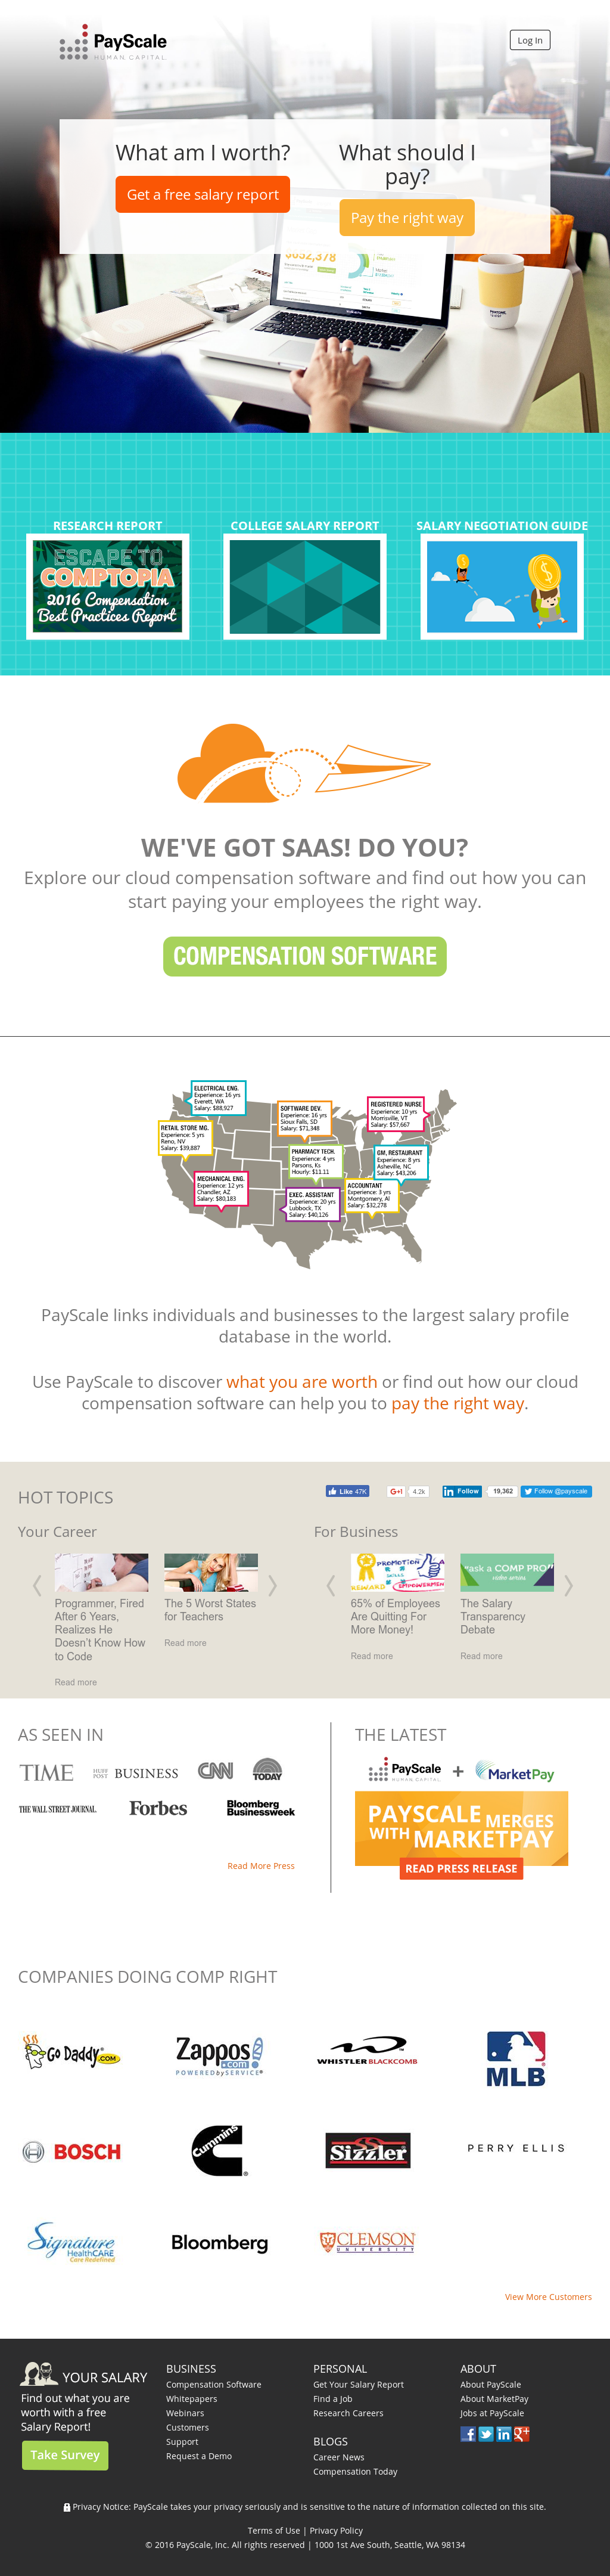 PayScale Competitors, Revenue and Employees - Owler Company